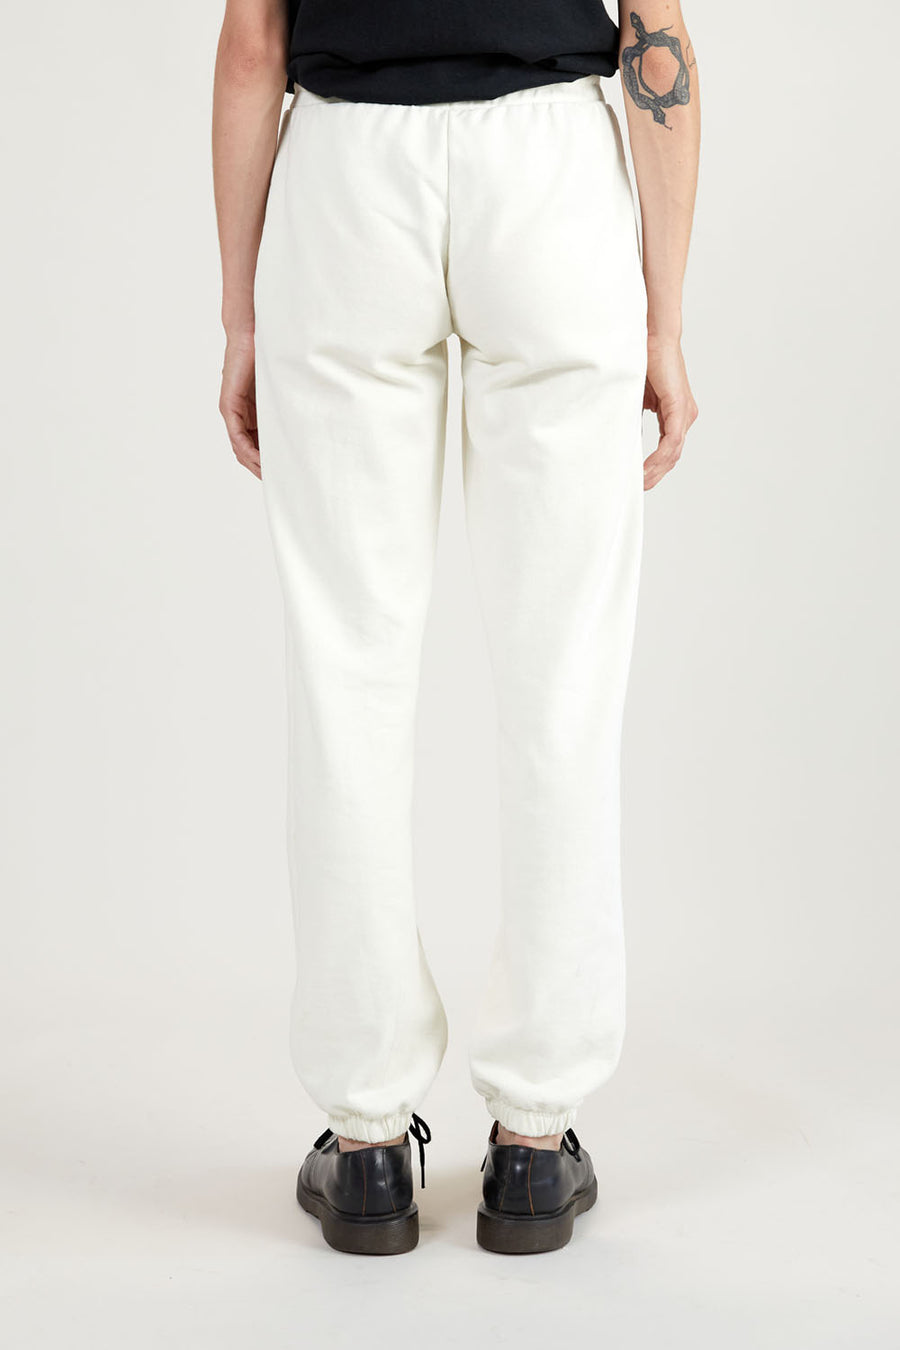 Recycled Terry Women's Sweatpant | Off-White